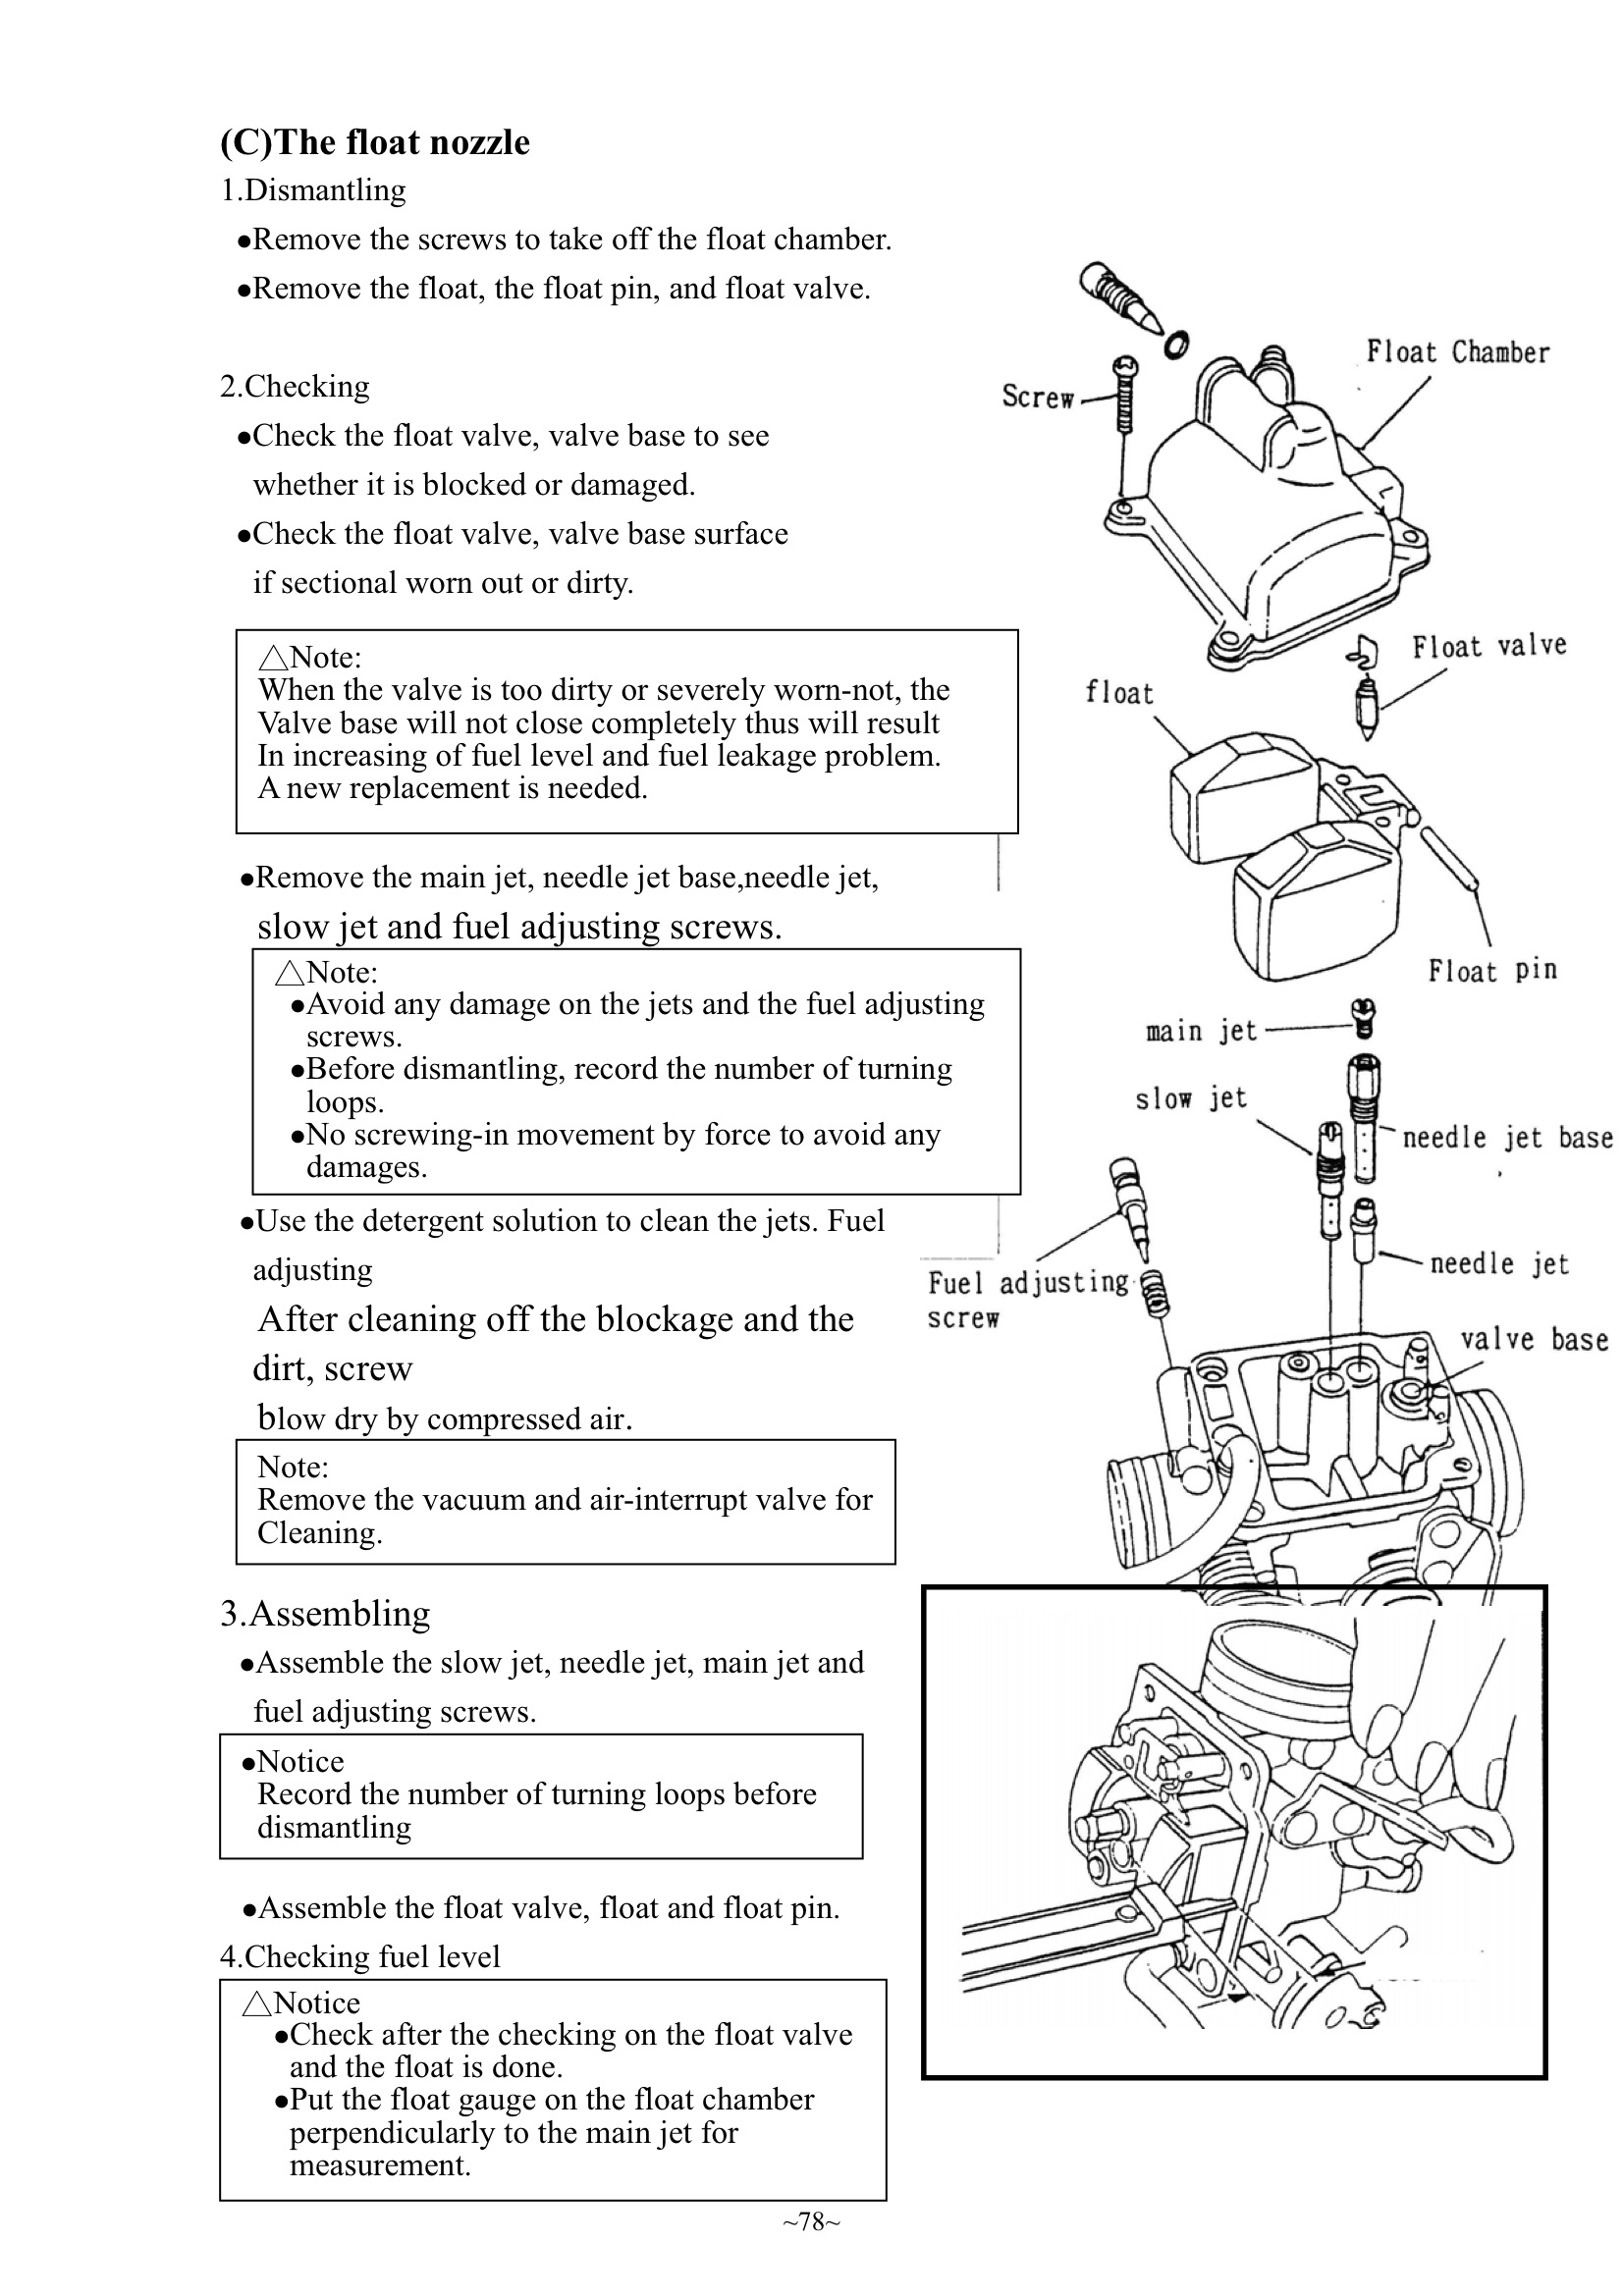 Yiben Scooter 50cc Parts Diagram Trusted Schematic Diagrams Gy6 Wiring Enthusiast U2022 Rh Rasalibre Co Motor